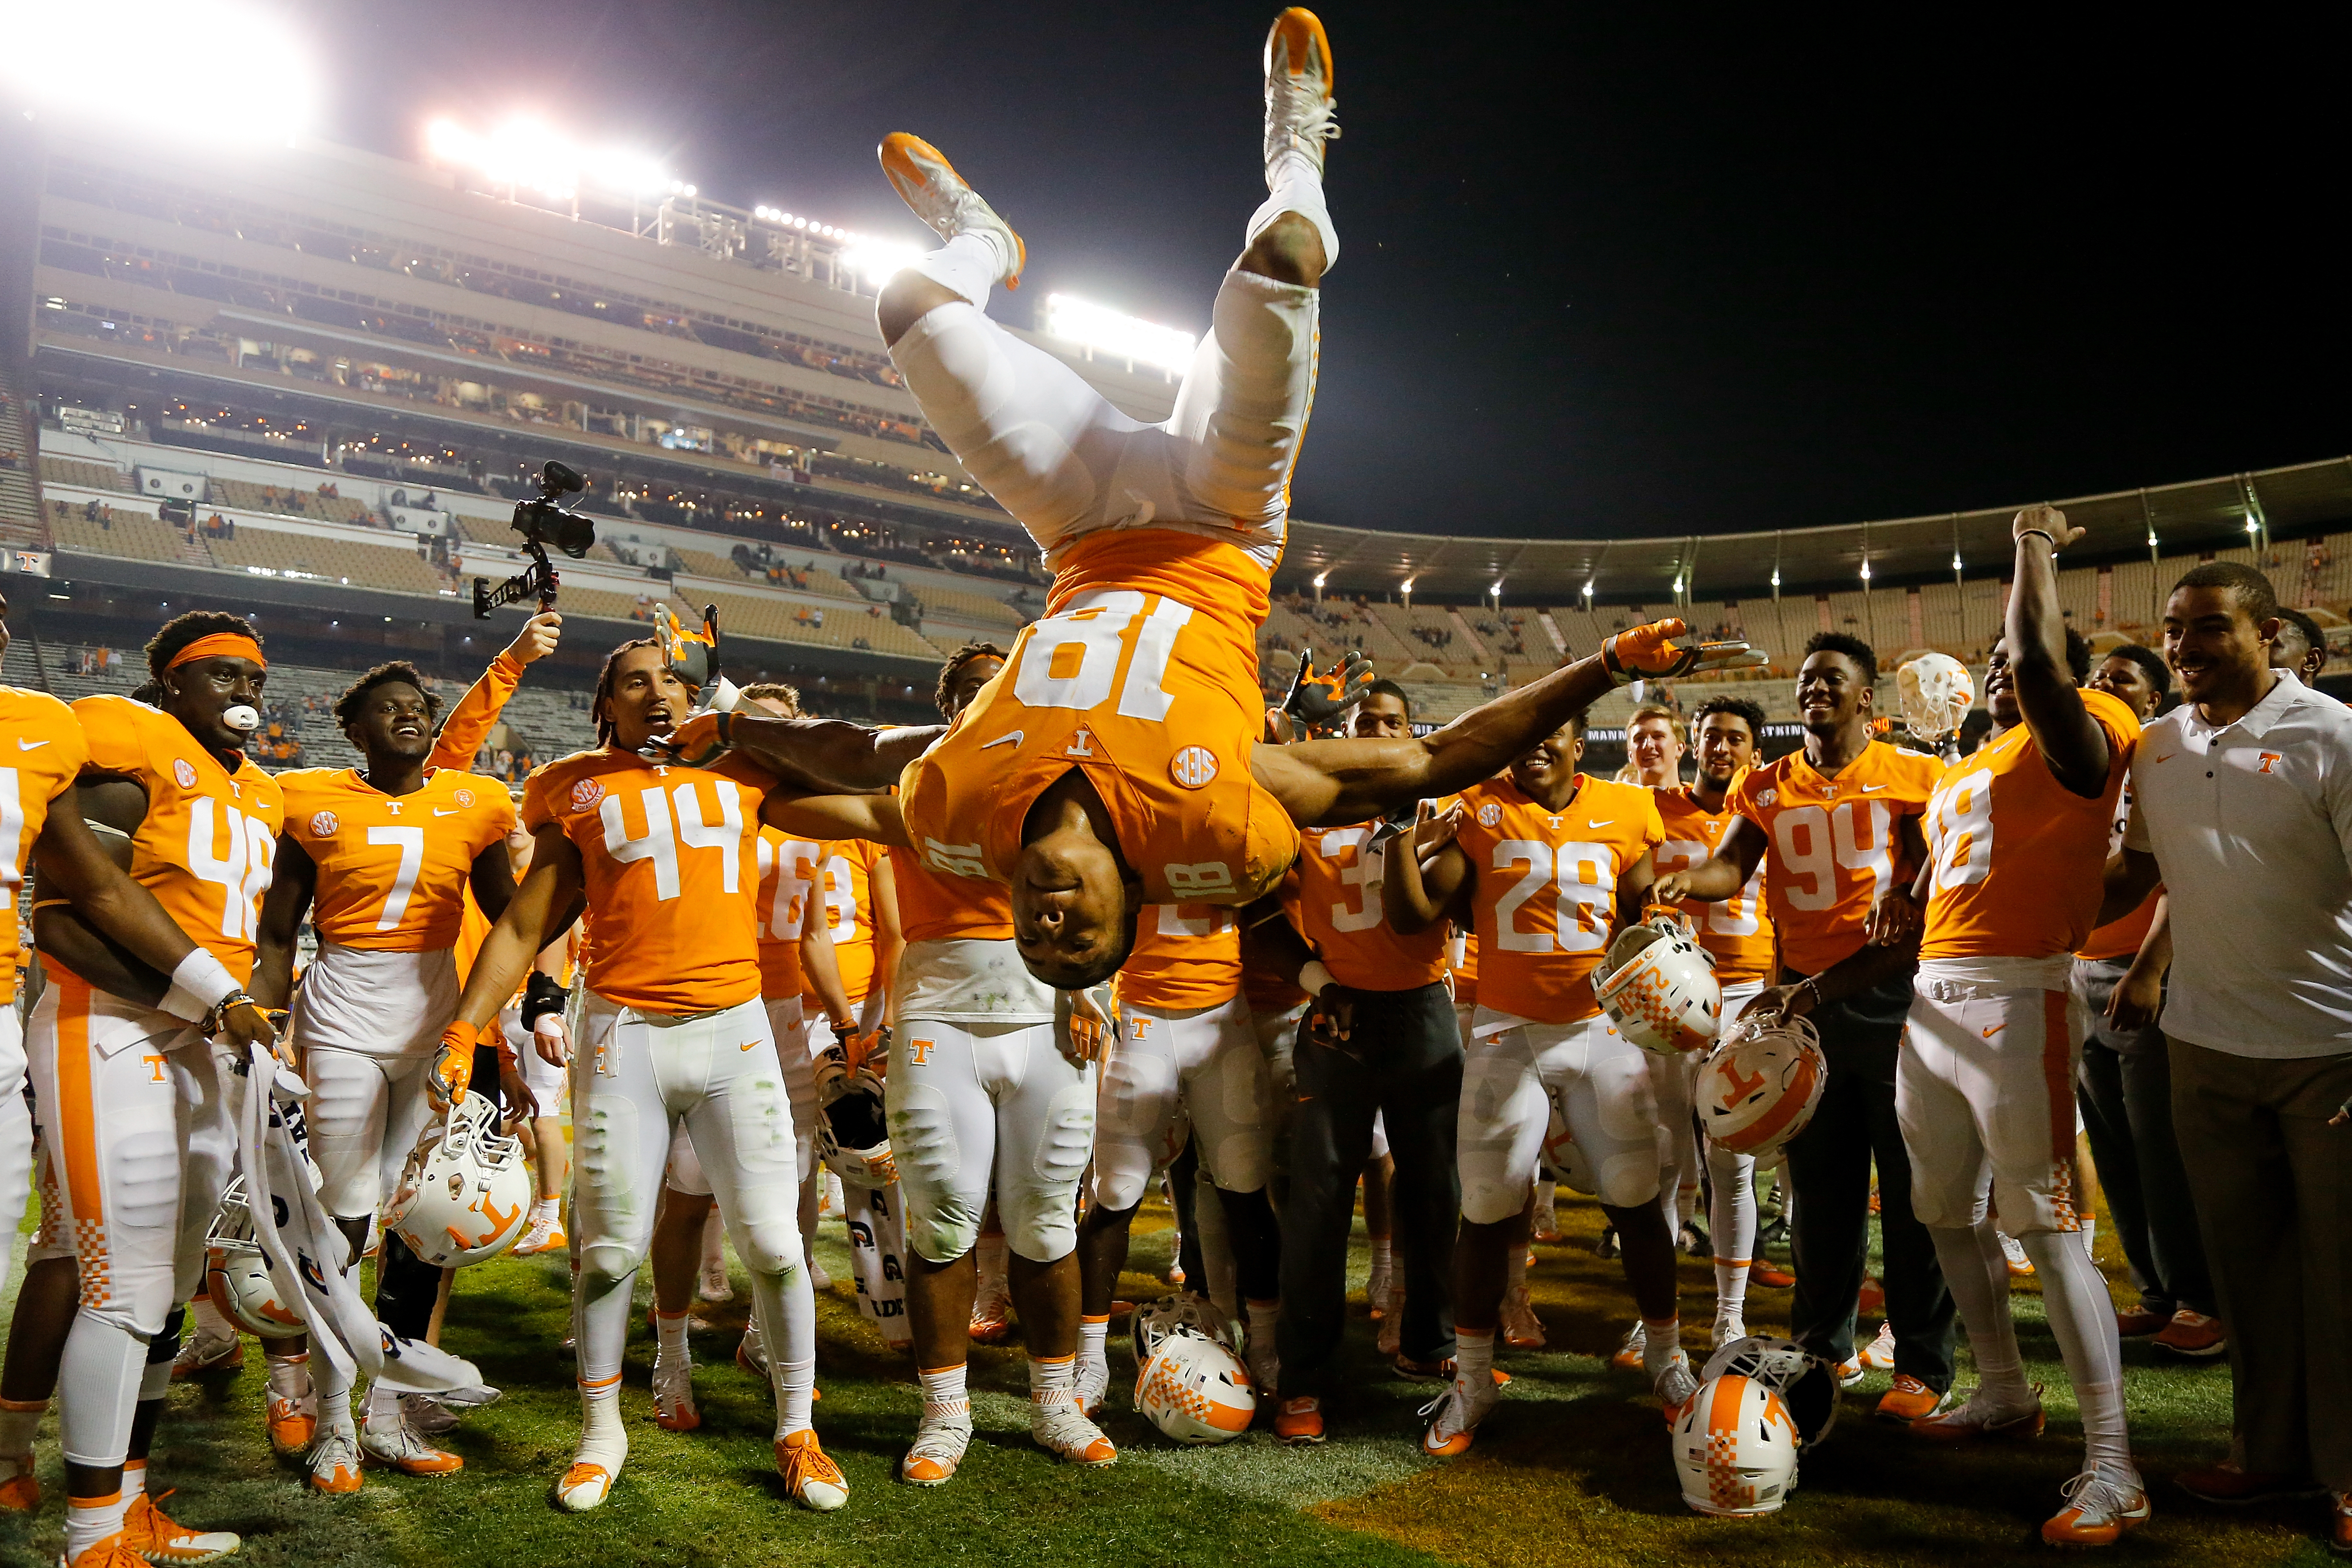 LSU's next opponent, Tennessee, fires its head coach